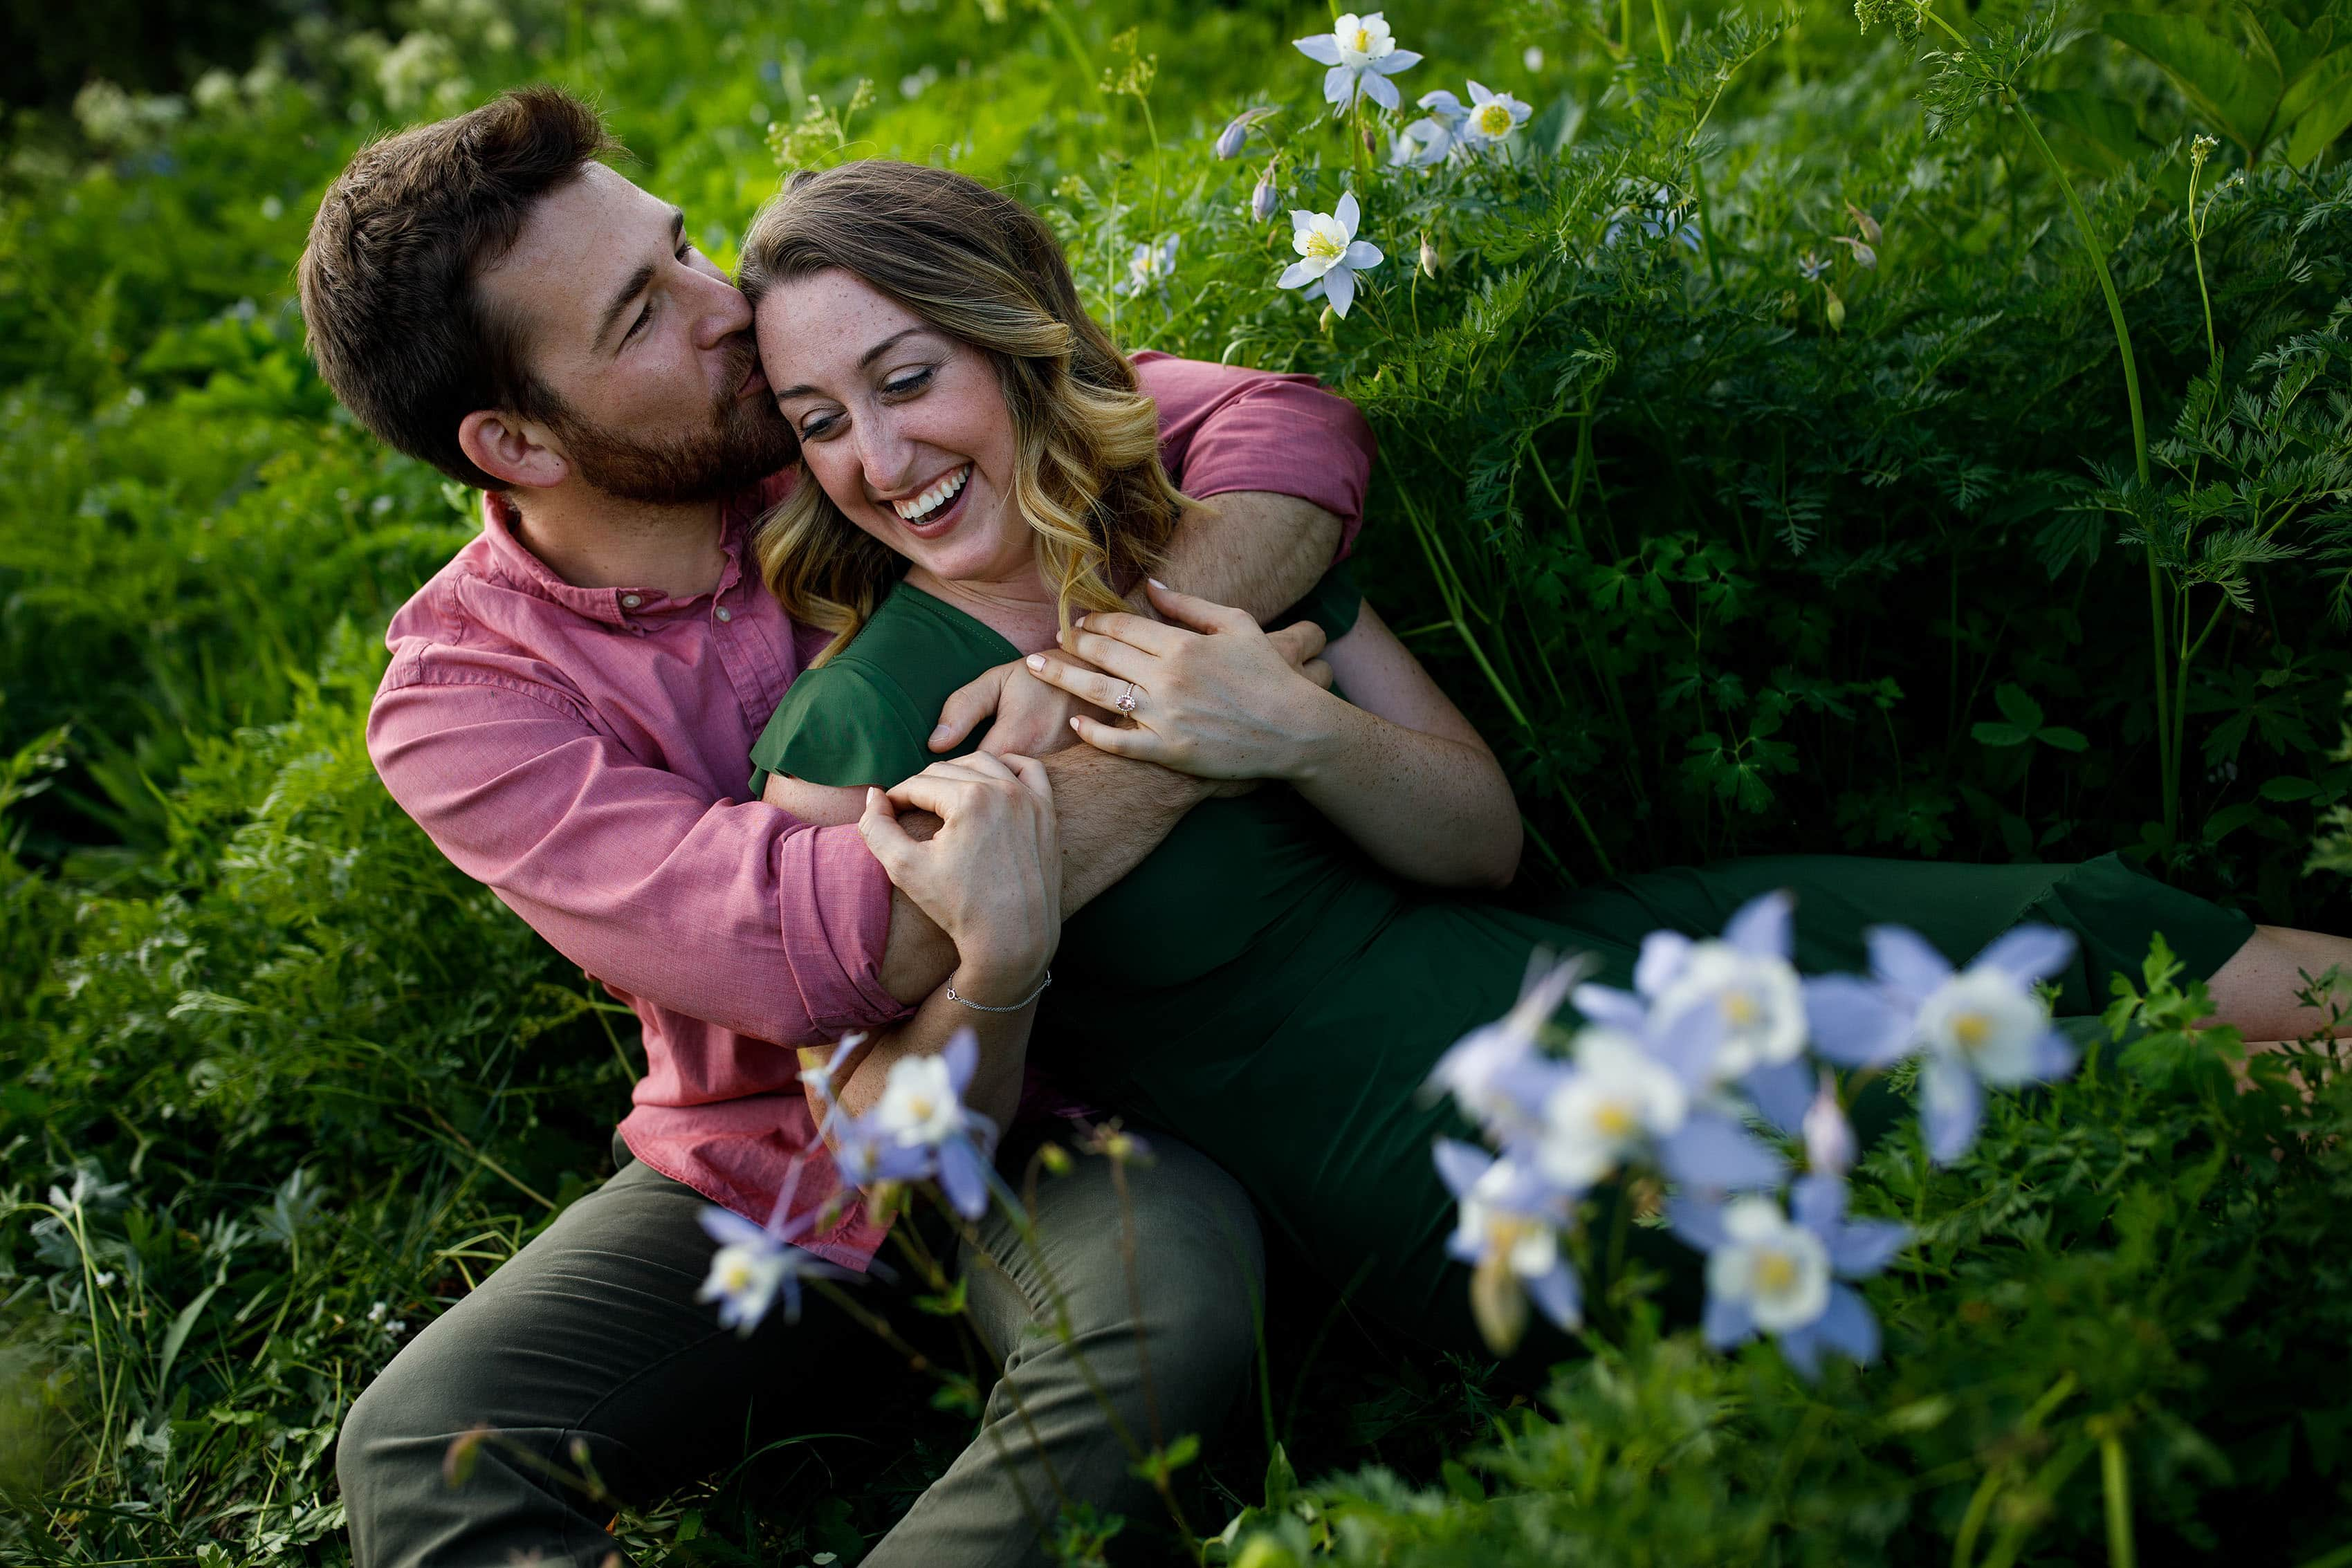 Laura and Ryan share a moment together near Columbine flowers in bloom during their engagement session in Vail, Colorado